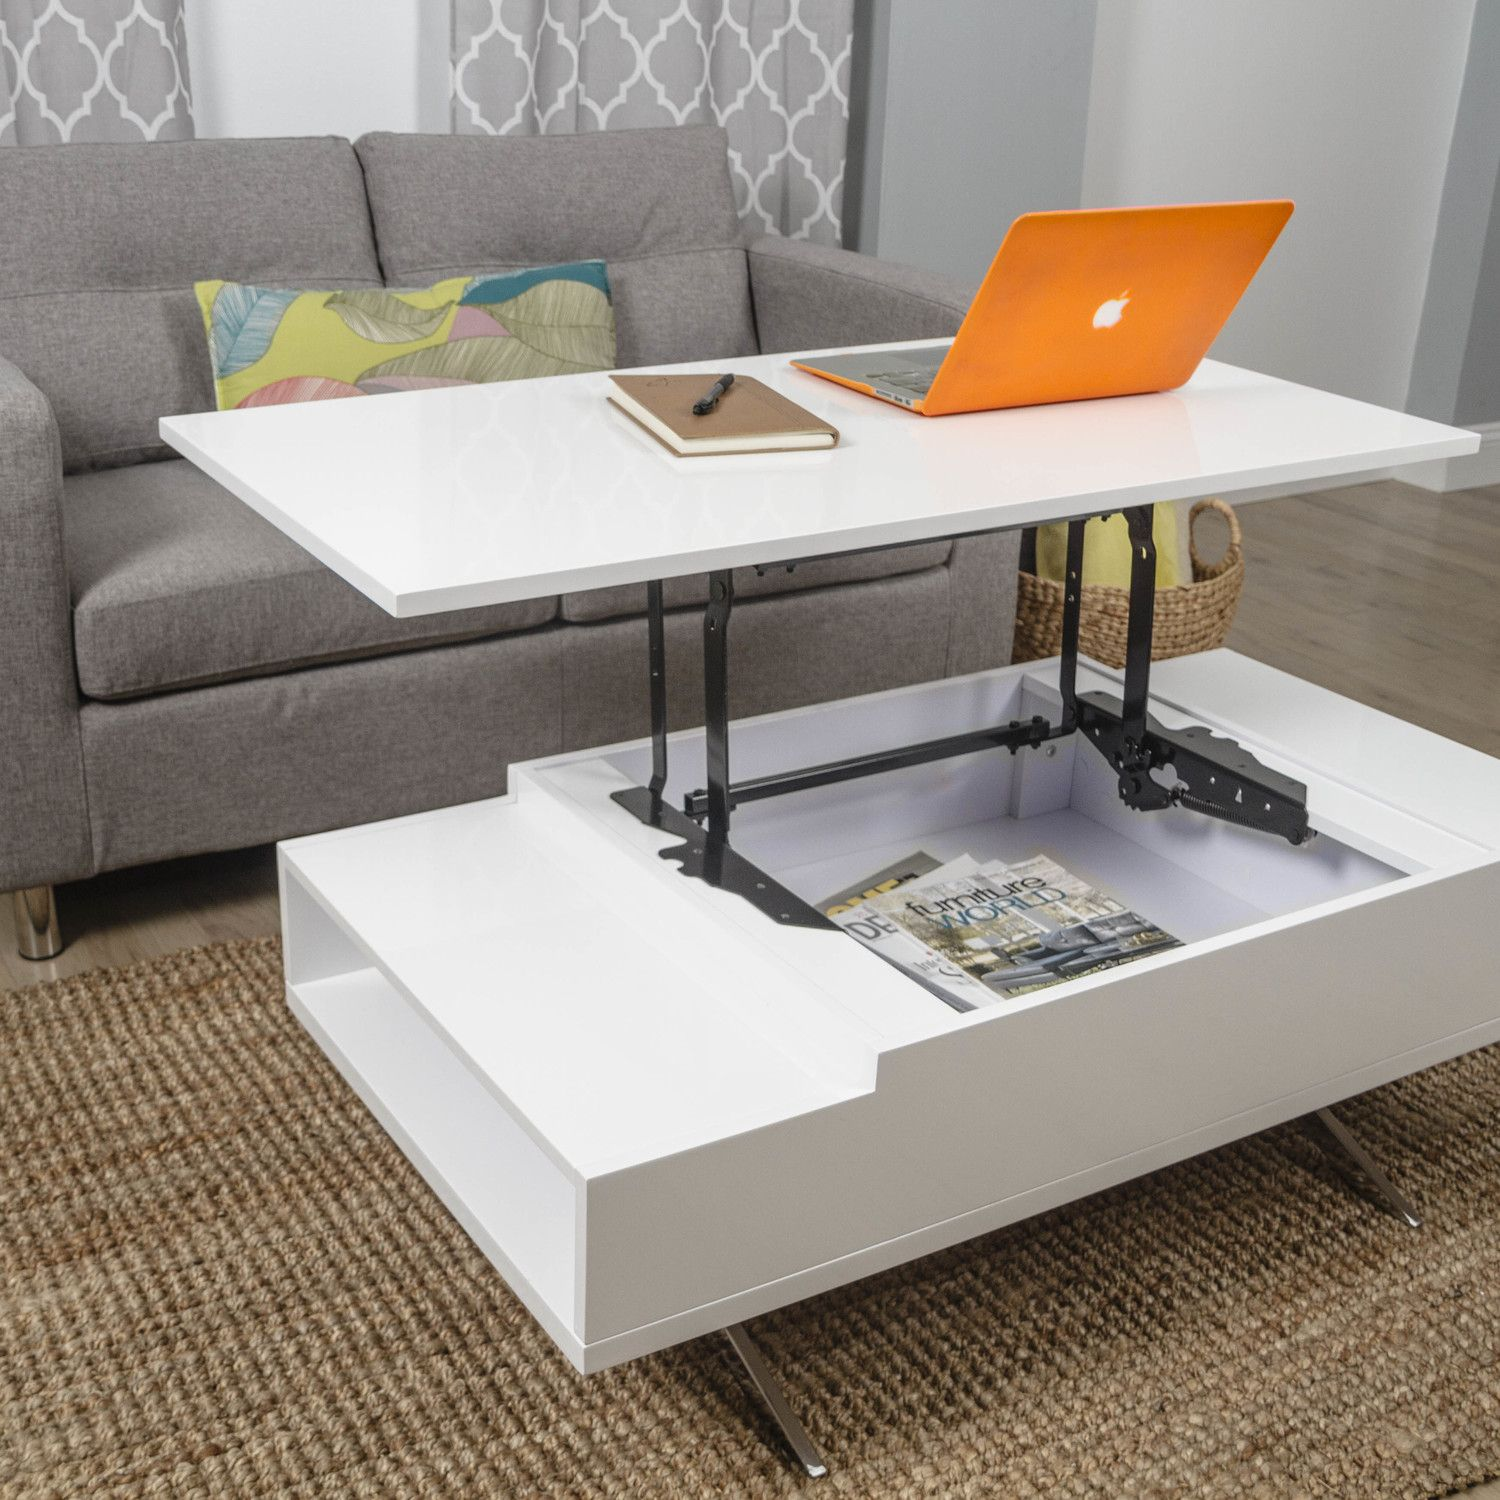 Couchtisch Lift Funktion Matrix Stelar White Lift-top Rectangular Coffee Table